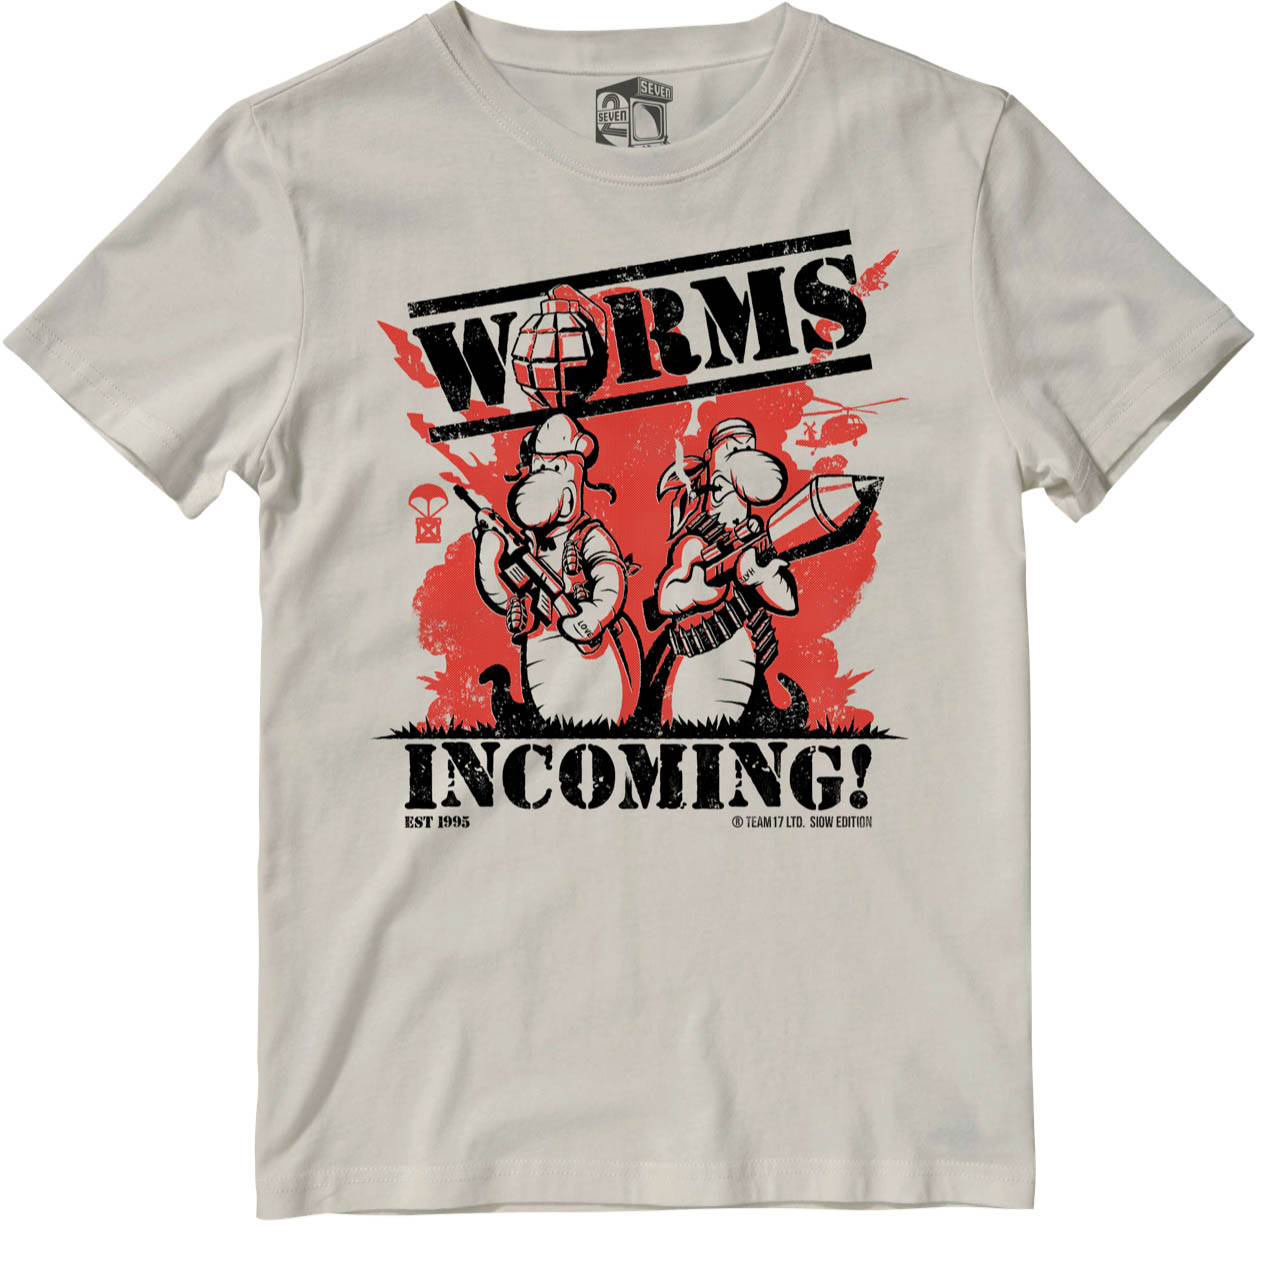 Worms - Incoming Limited Edition T Shirt